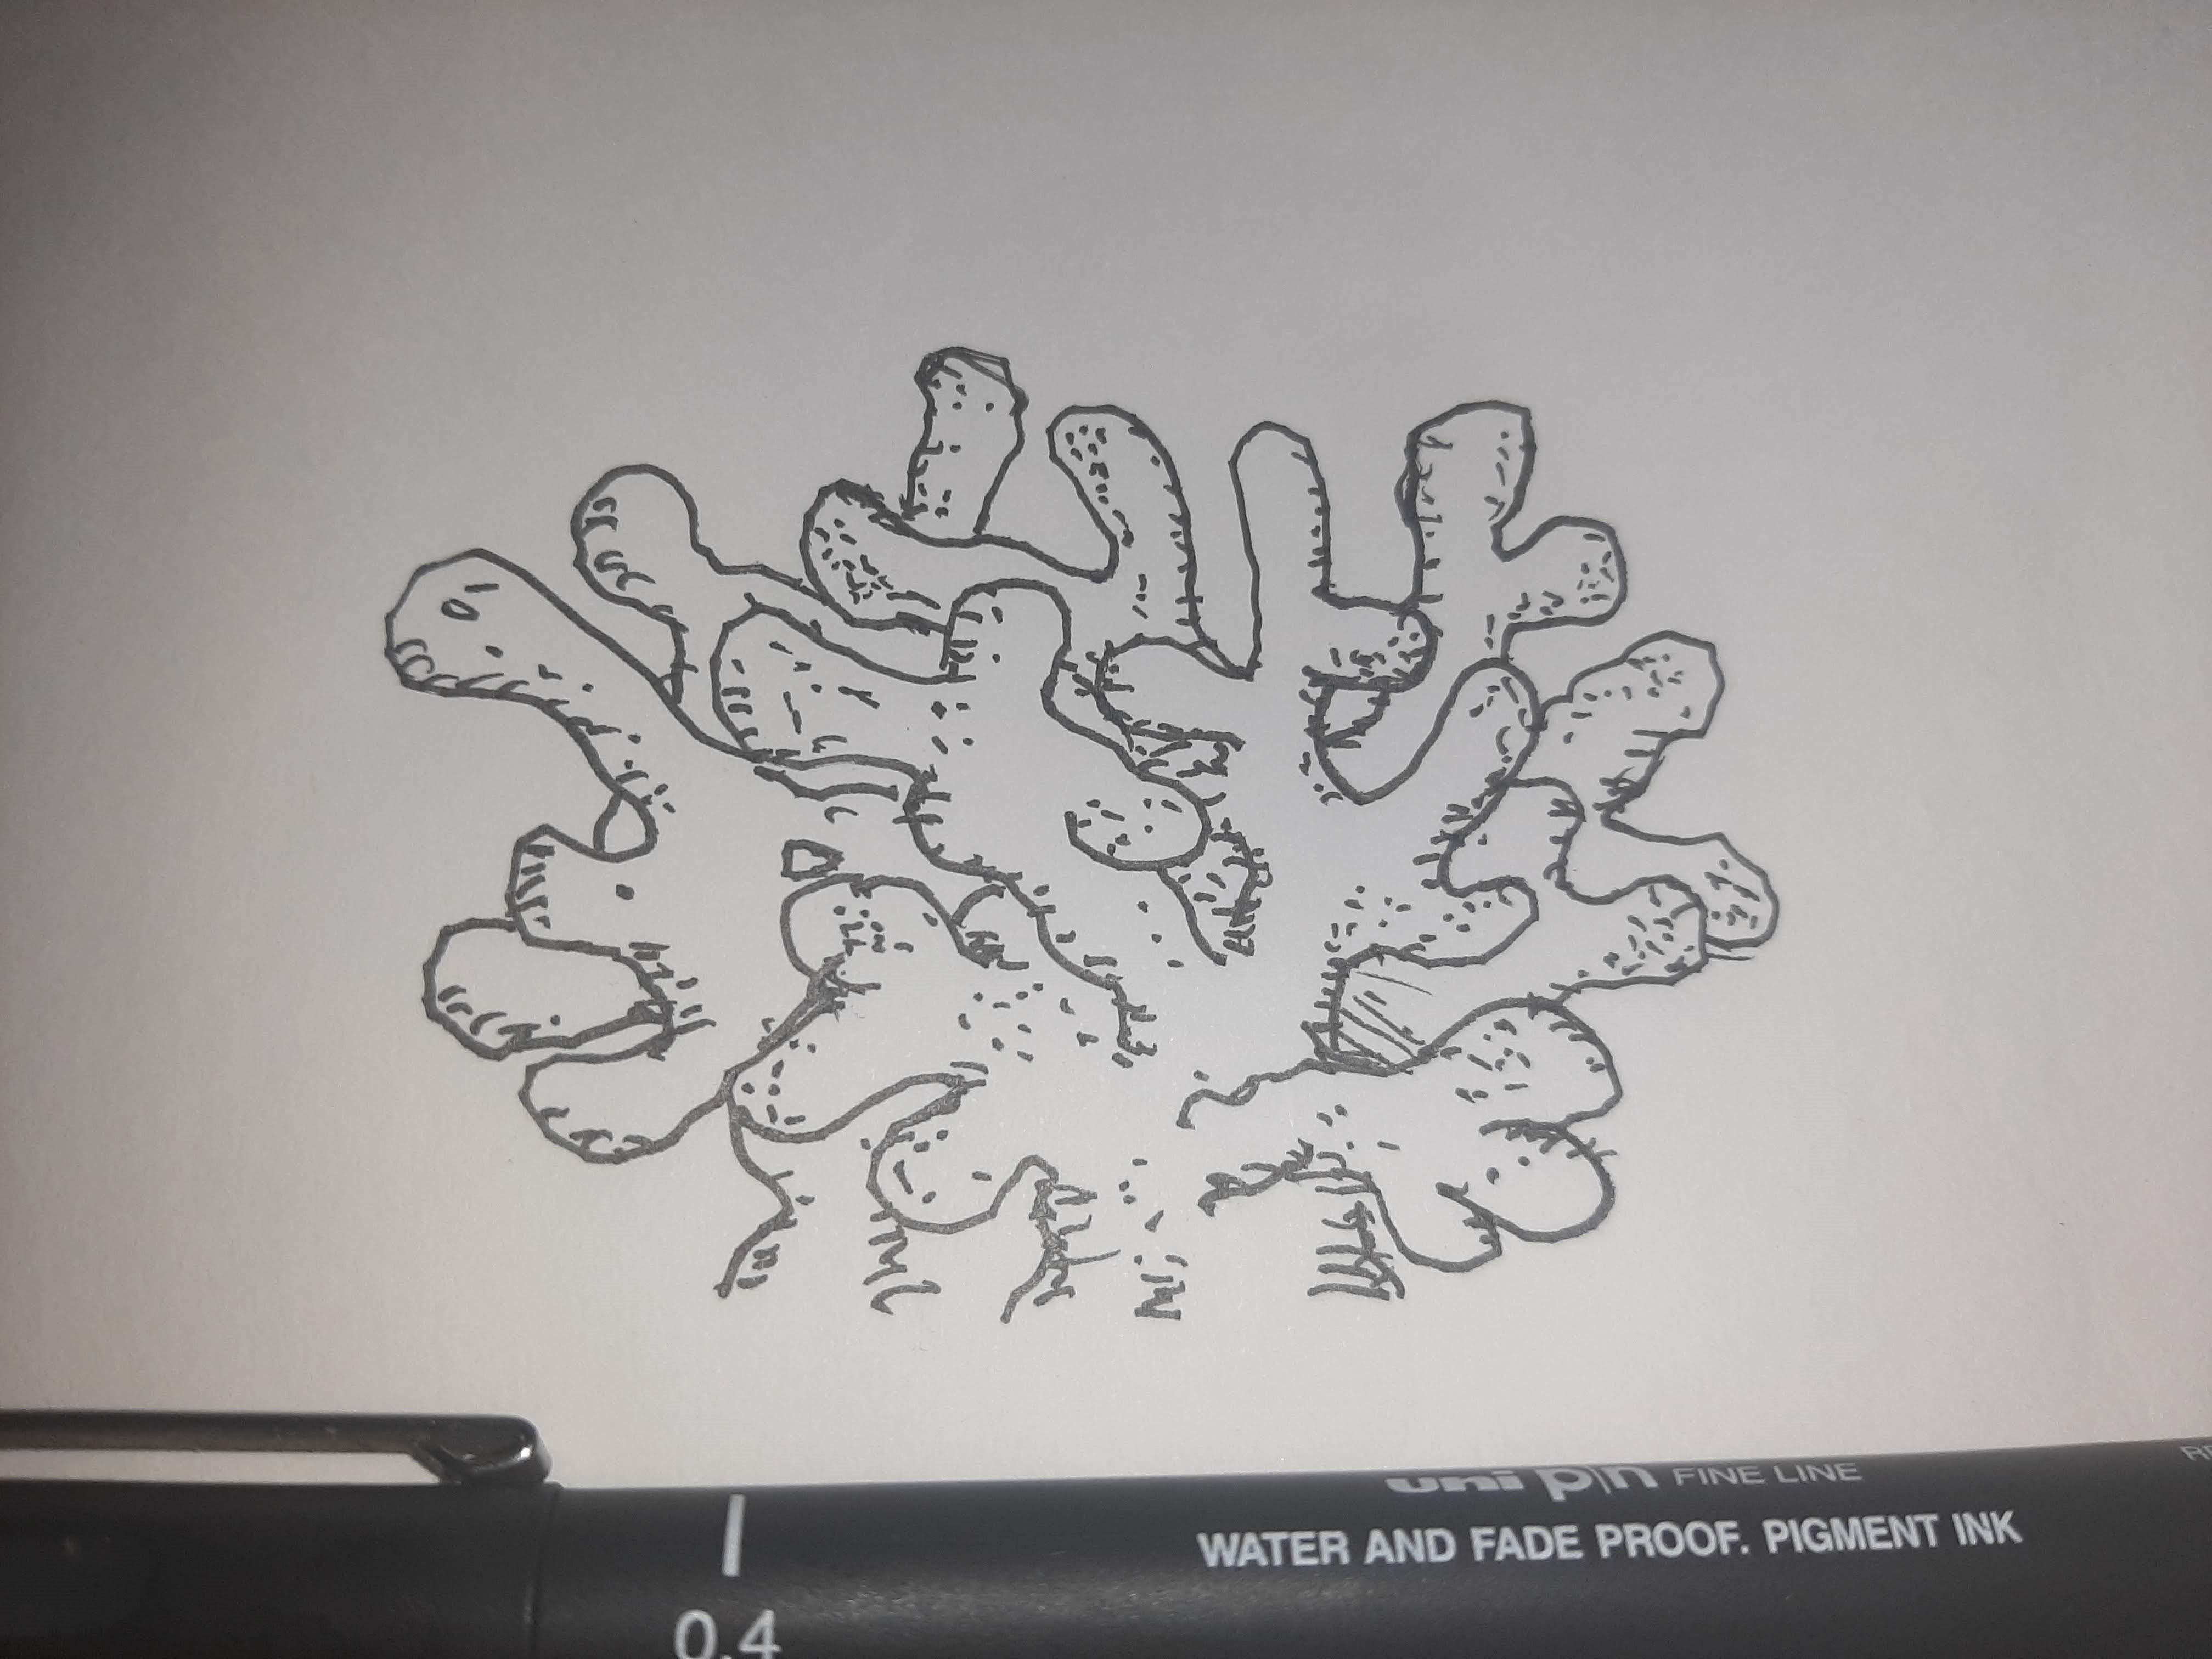 Inktober 2020 day 20: CORAL I didn't spend too much time on this because I find corals weird and creepy. Official prompt list: https://inktober.com/rules